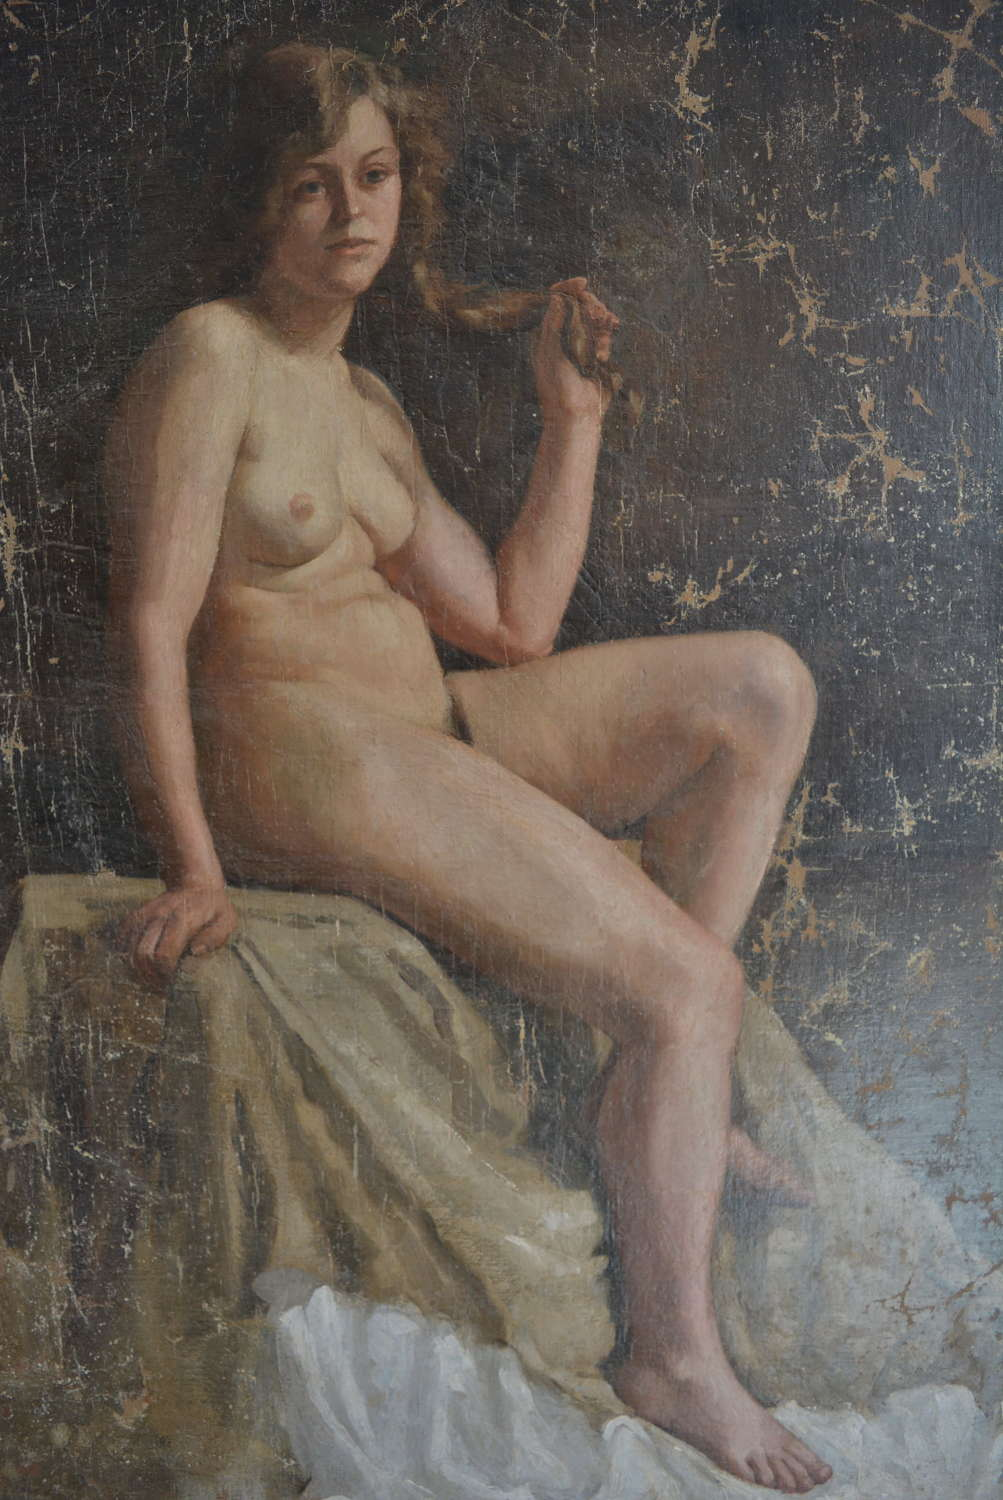 EARLY 20TH CENTURY FEMALE NUDE LIFE STUDY